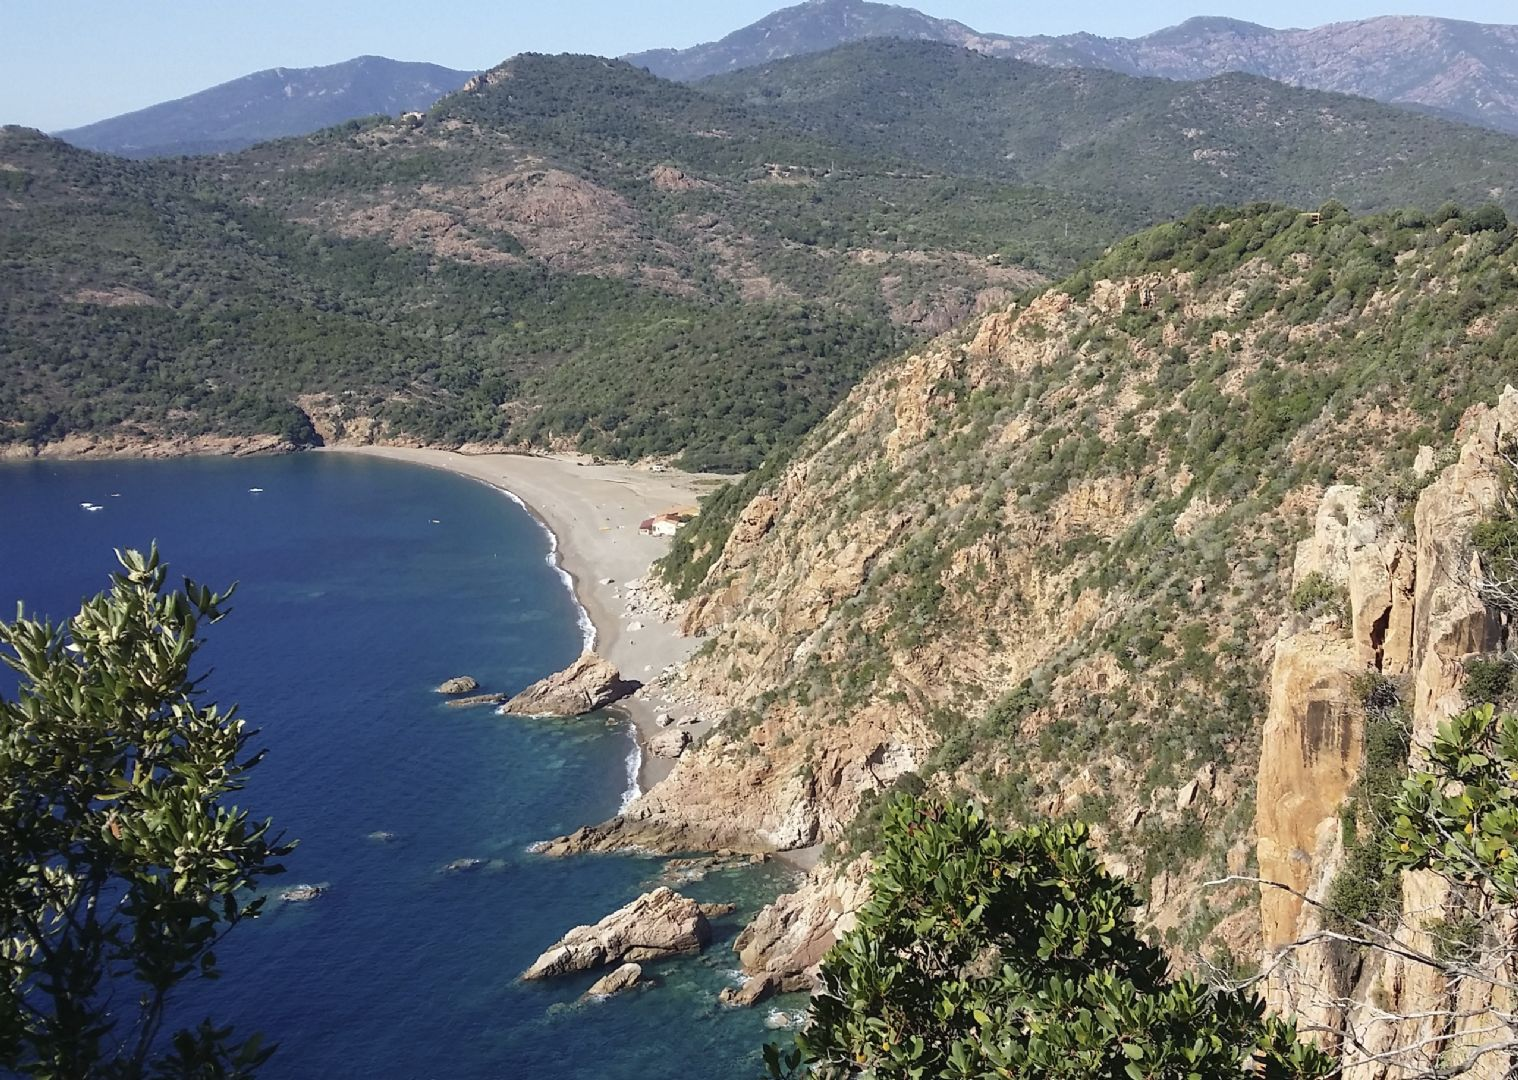 20141008_145246.jpg - France - Corsica - Self-Guided Leisure Cycling Holiday - Leisure Cycling